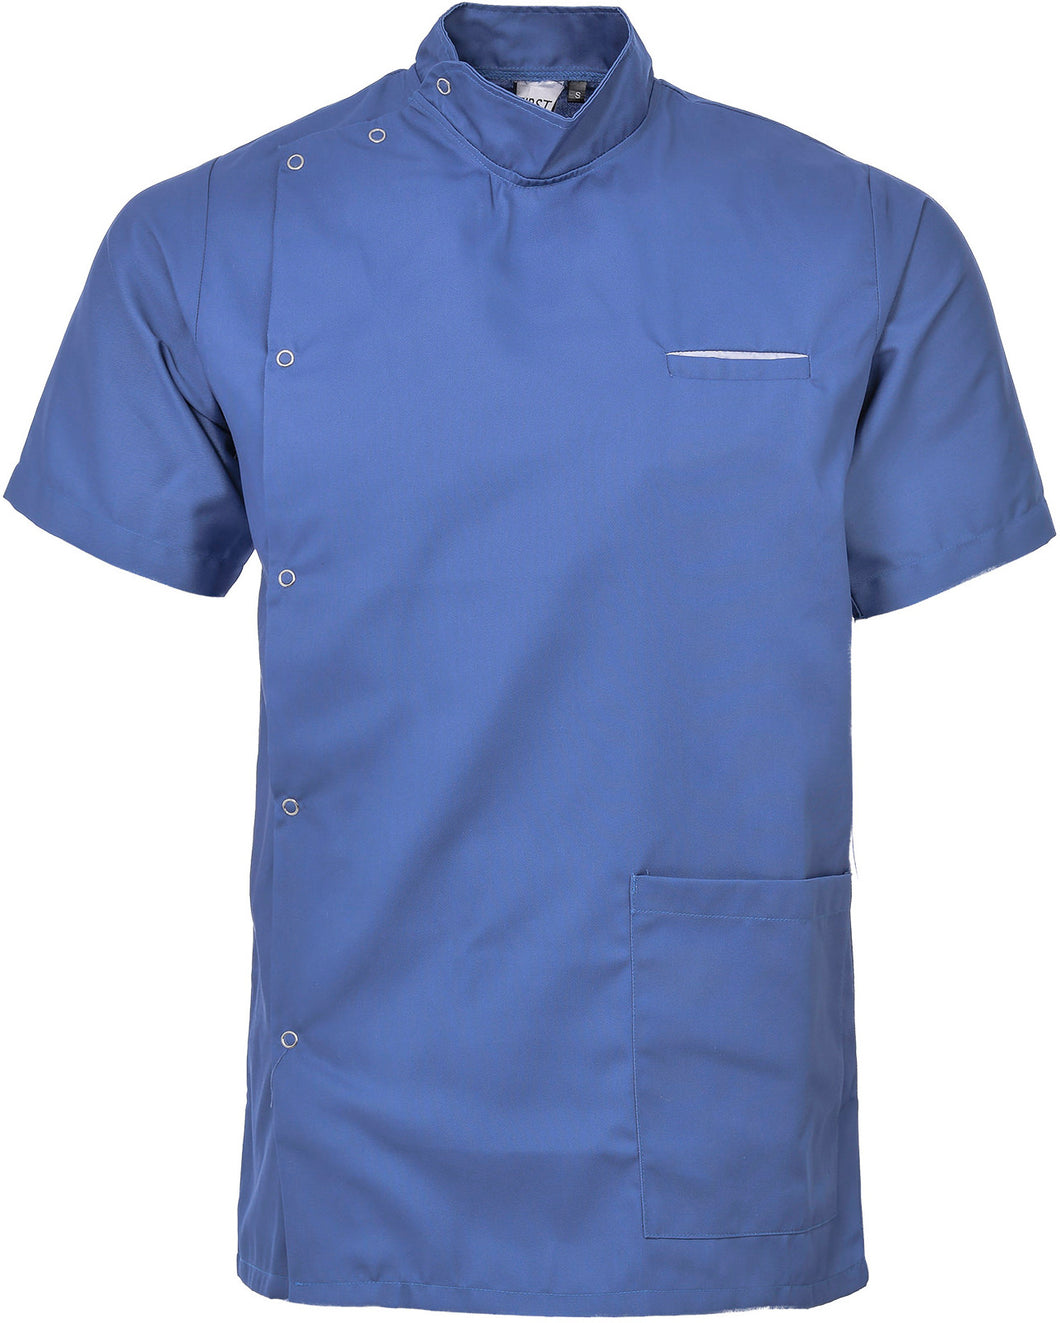 Male Asymmetric Healthcare Tunic Hospital Blue